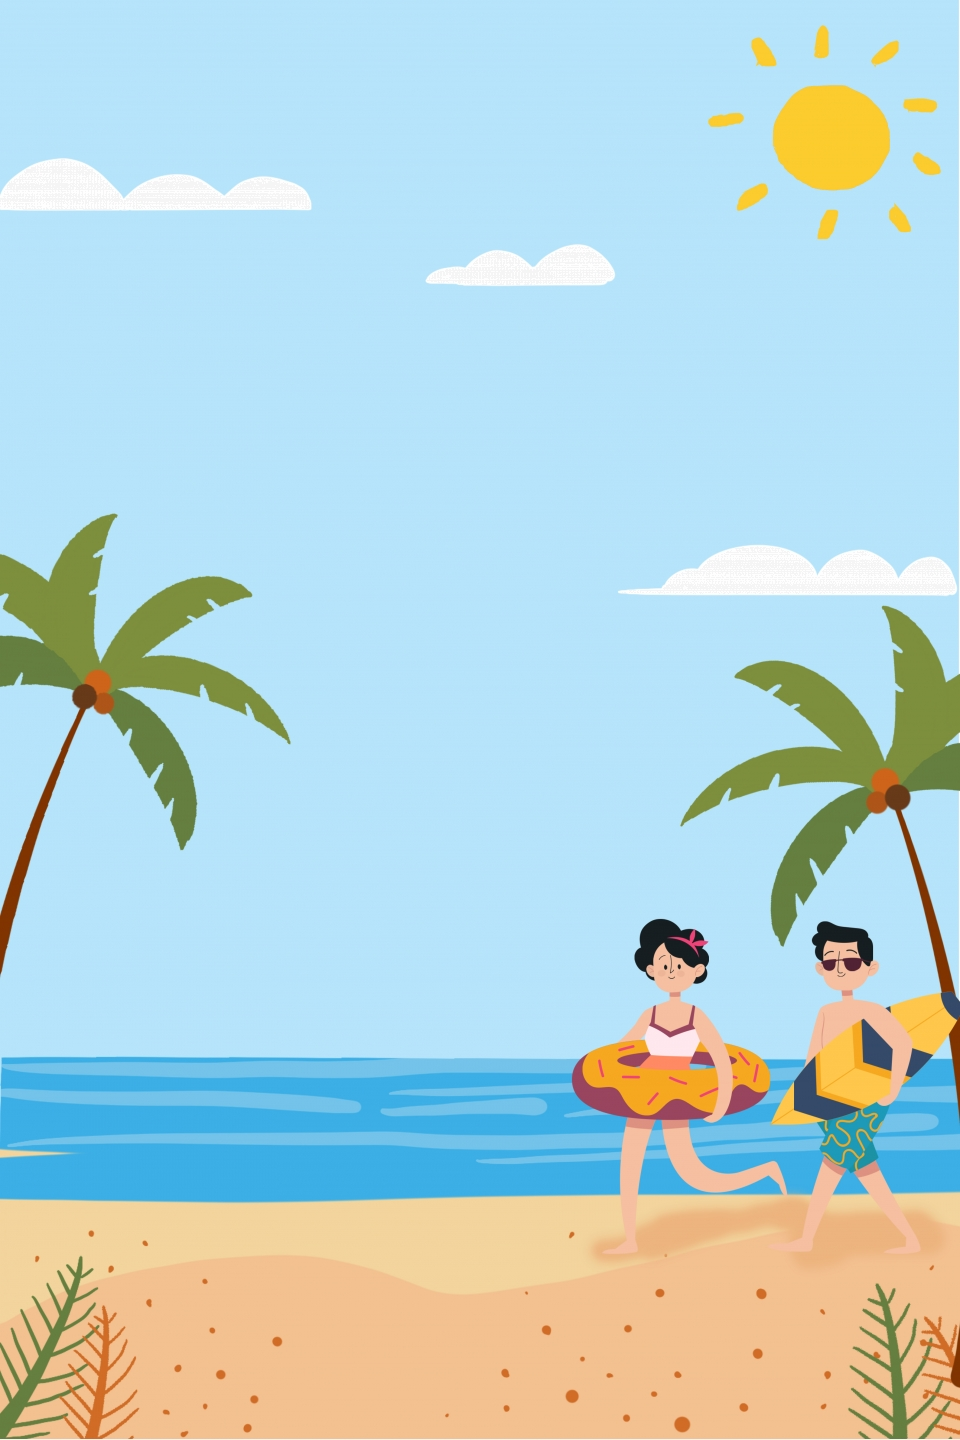 Cartoon Ocean Vacation Travel Background Cartoon Summer Sea Background Image For Free Download